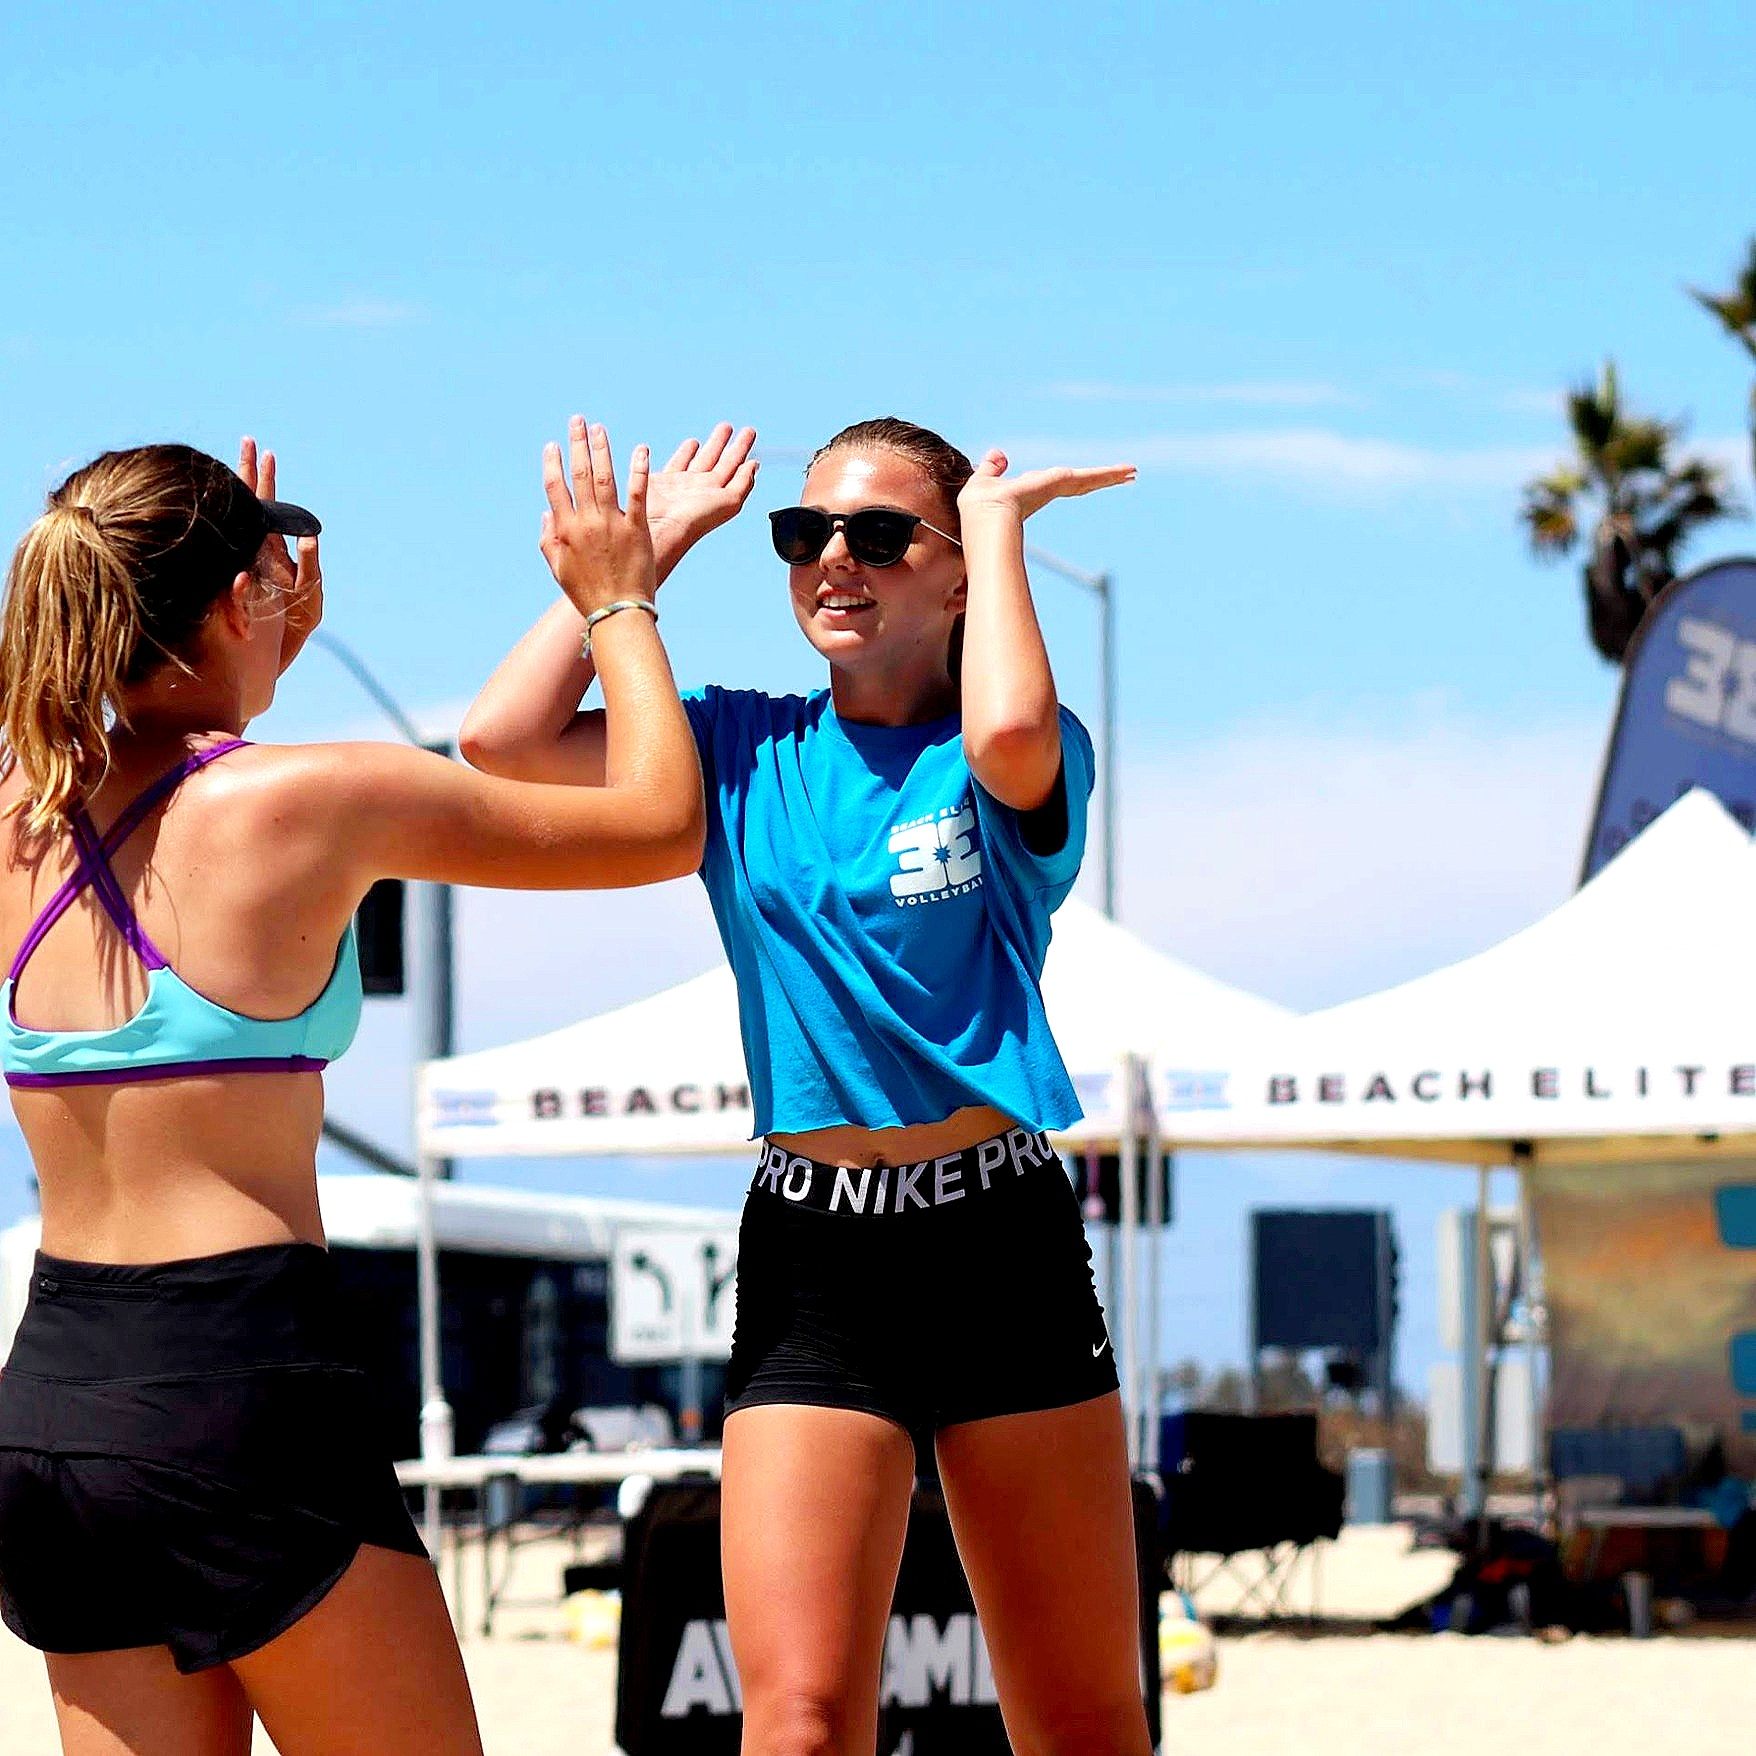 BEACH ELITE SELECT - Advanced Beach Volleyball Training➜ Run by legendary coach Adam Cutrell➜ Saturday mornings year round ➜ All players must be invited to join program